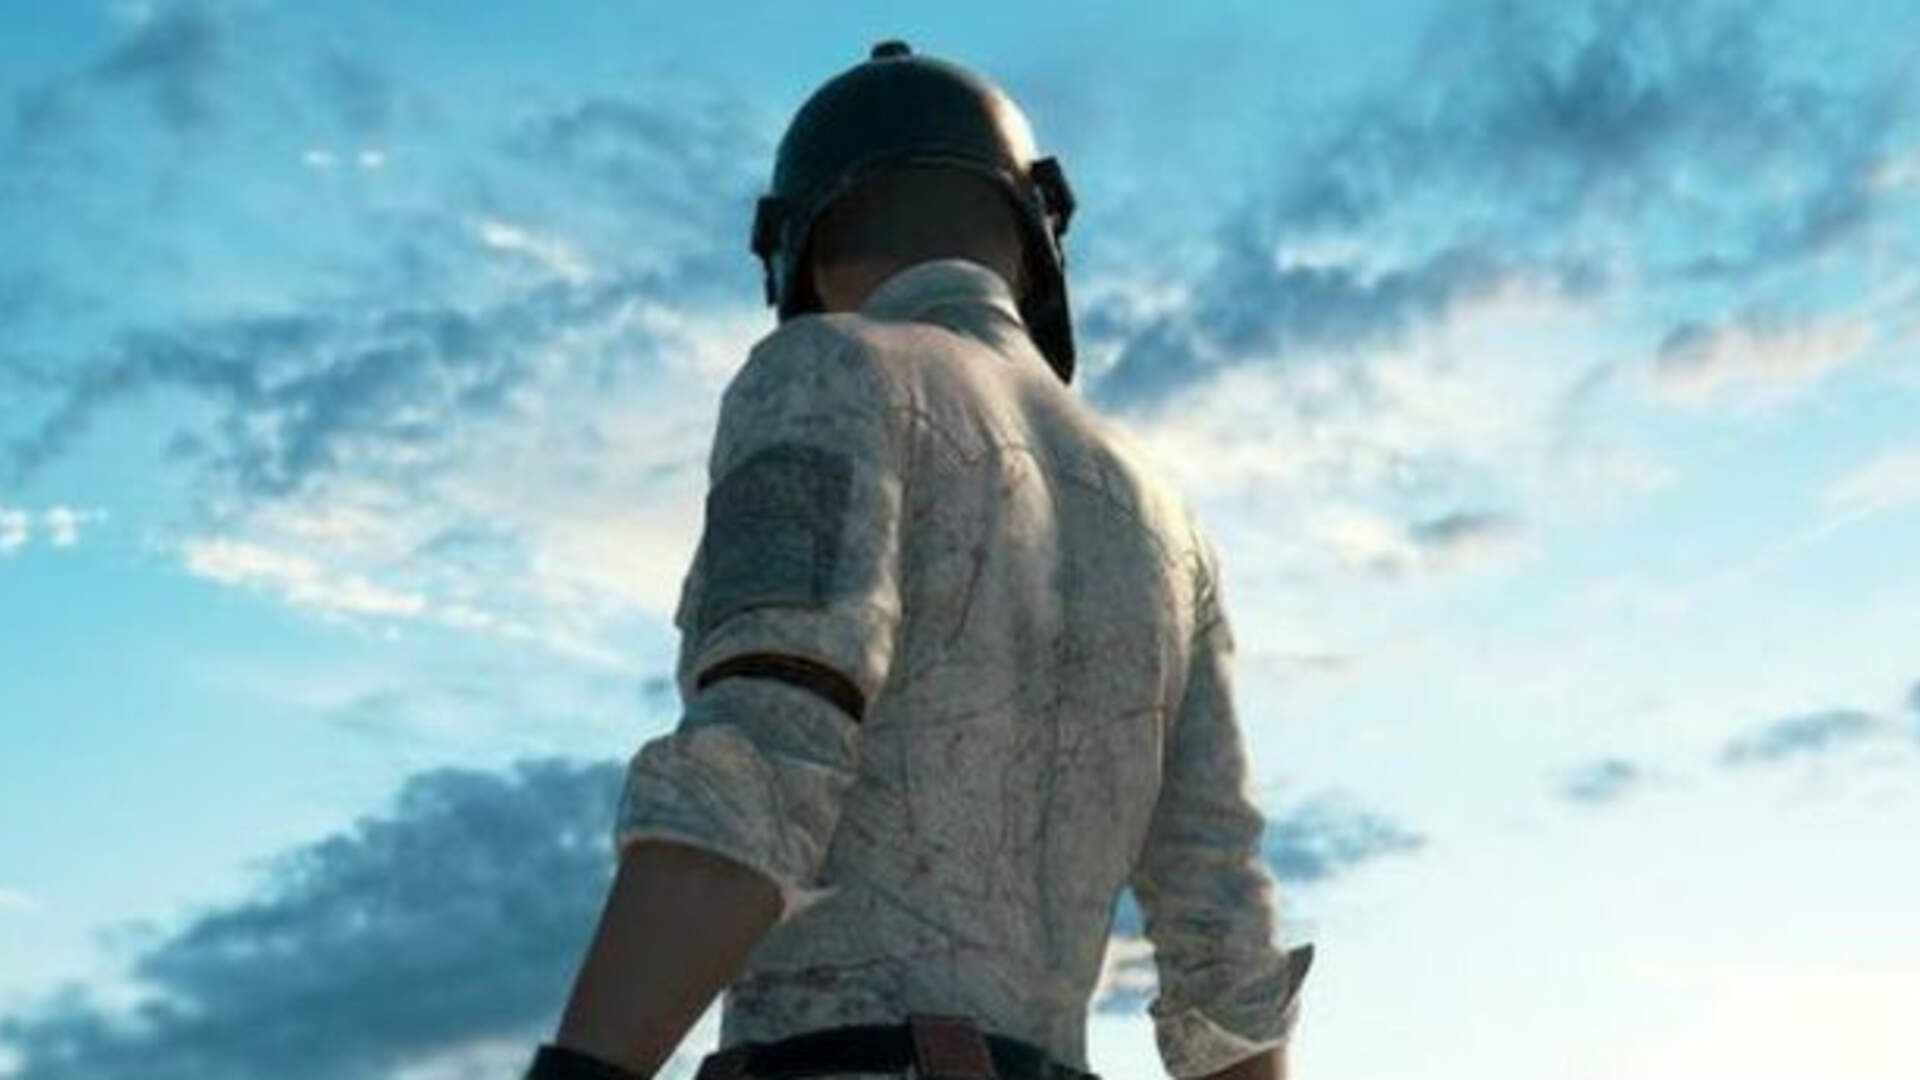 PUBG on Xbox One Passes 3 Million Players in Only One Month